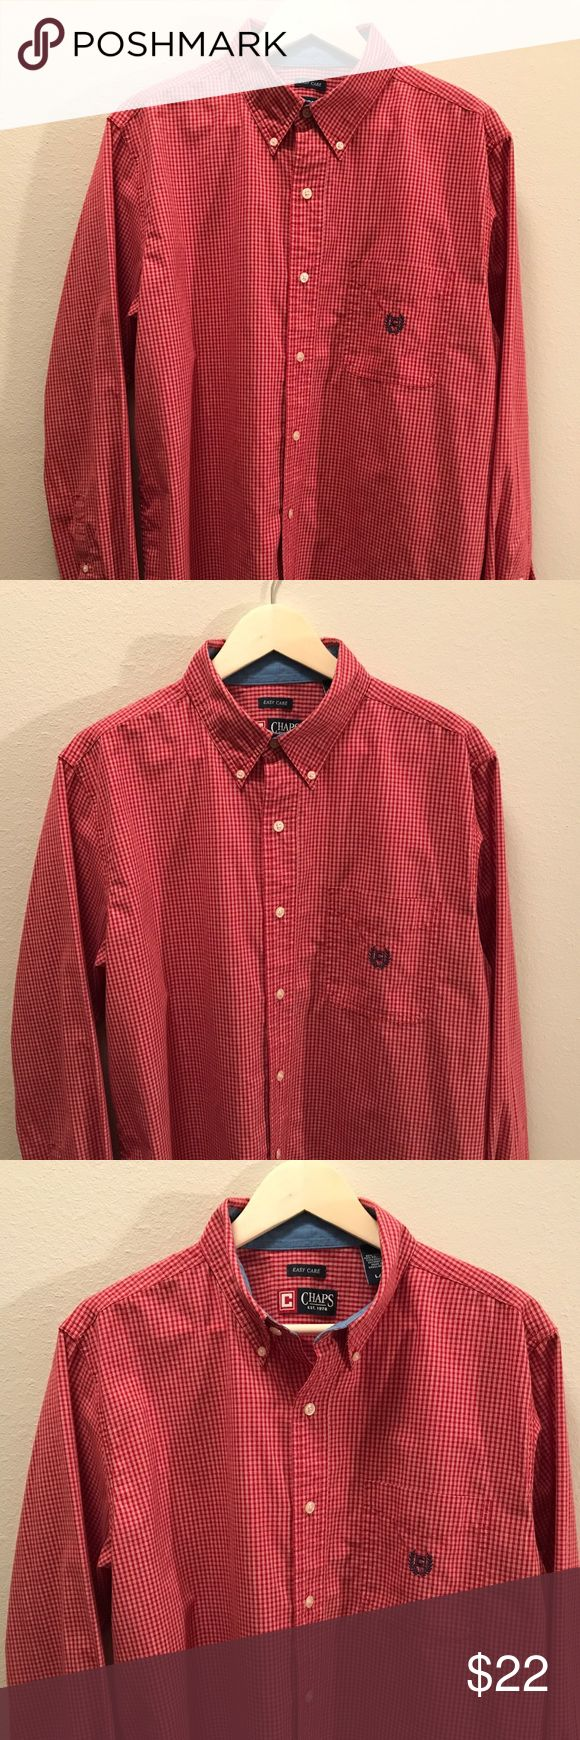 SALE! Classic Chaps Red Checked Shirt Classic Chaps Red Checked Shirt  Size: Large  Classic style / Excellent condition! Chaps Shirts Casual Button Down Shirts